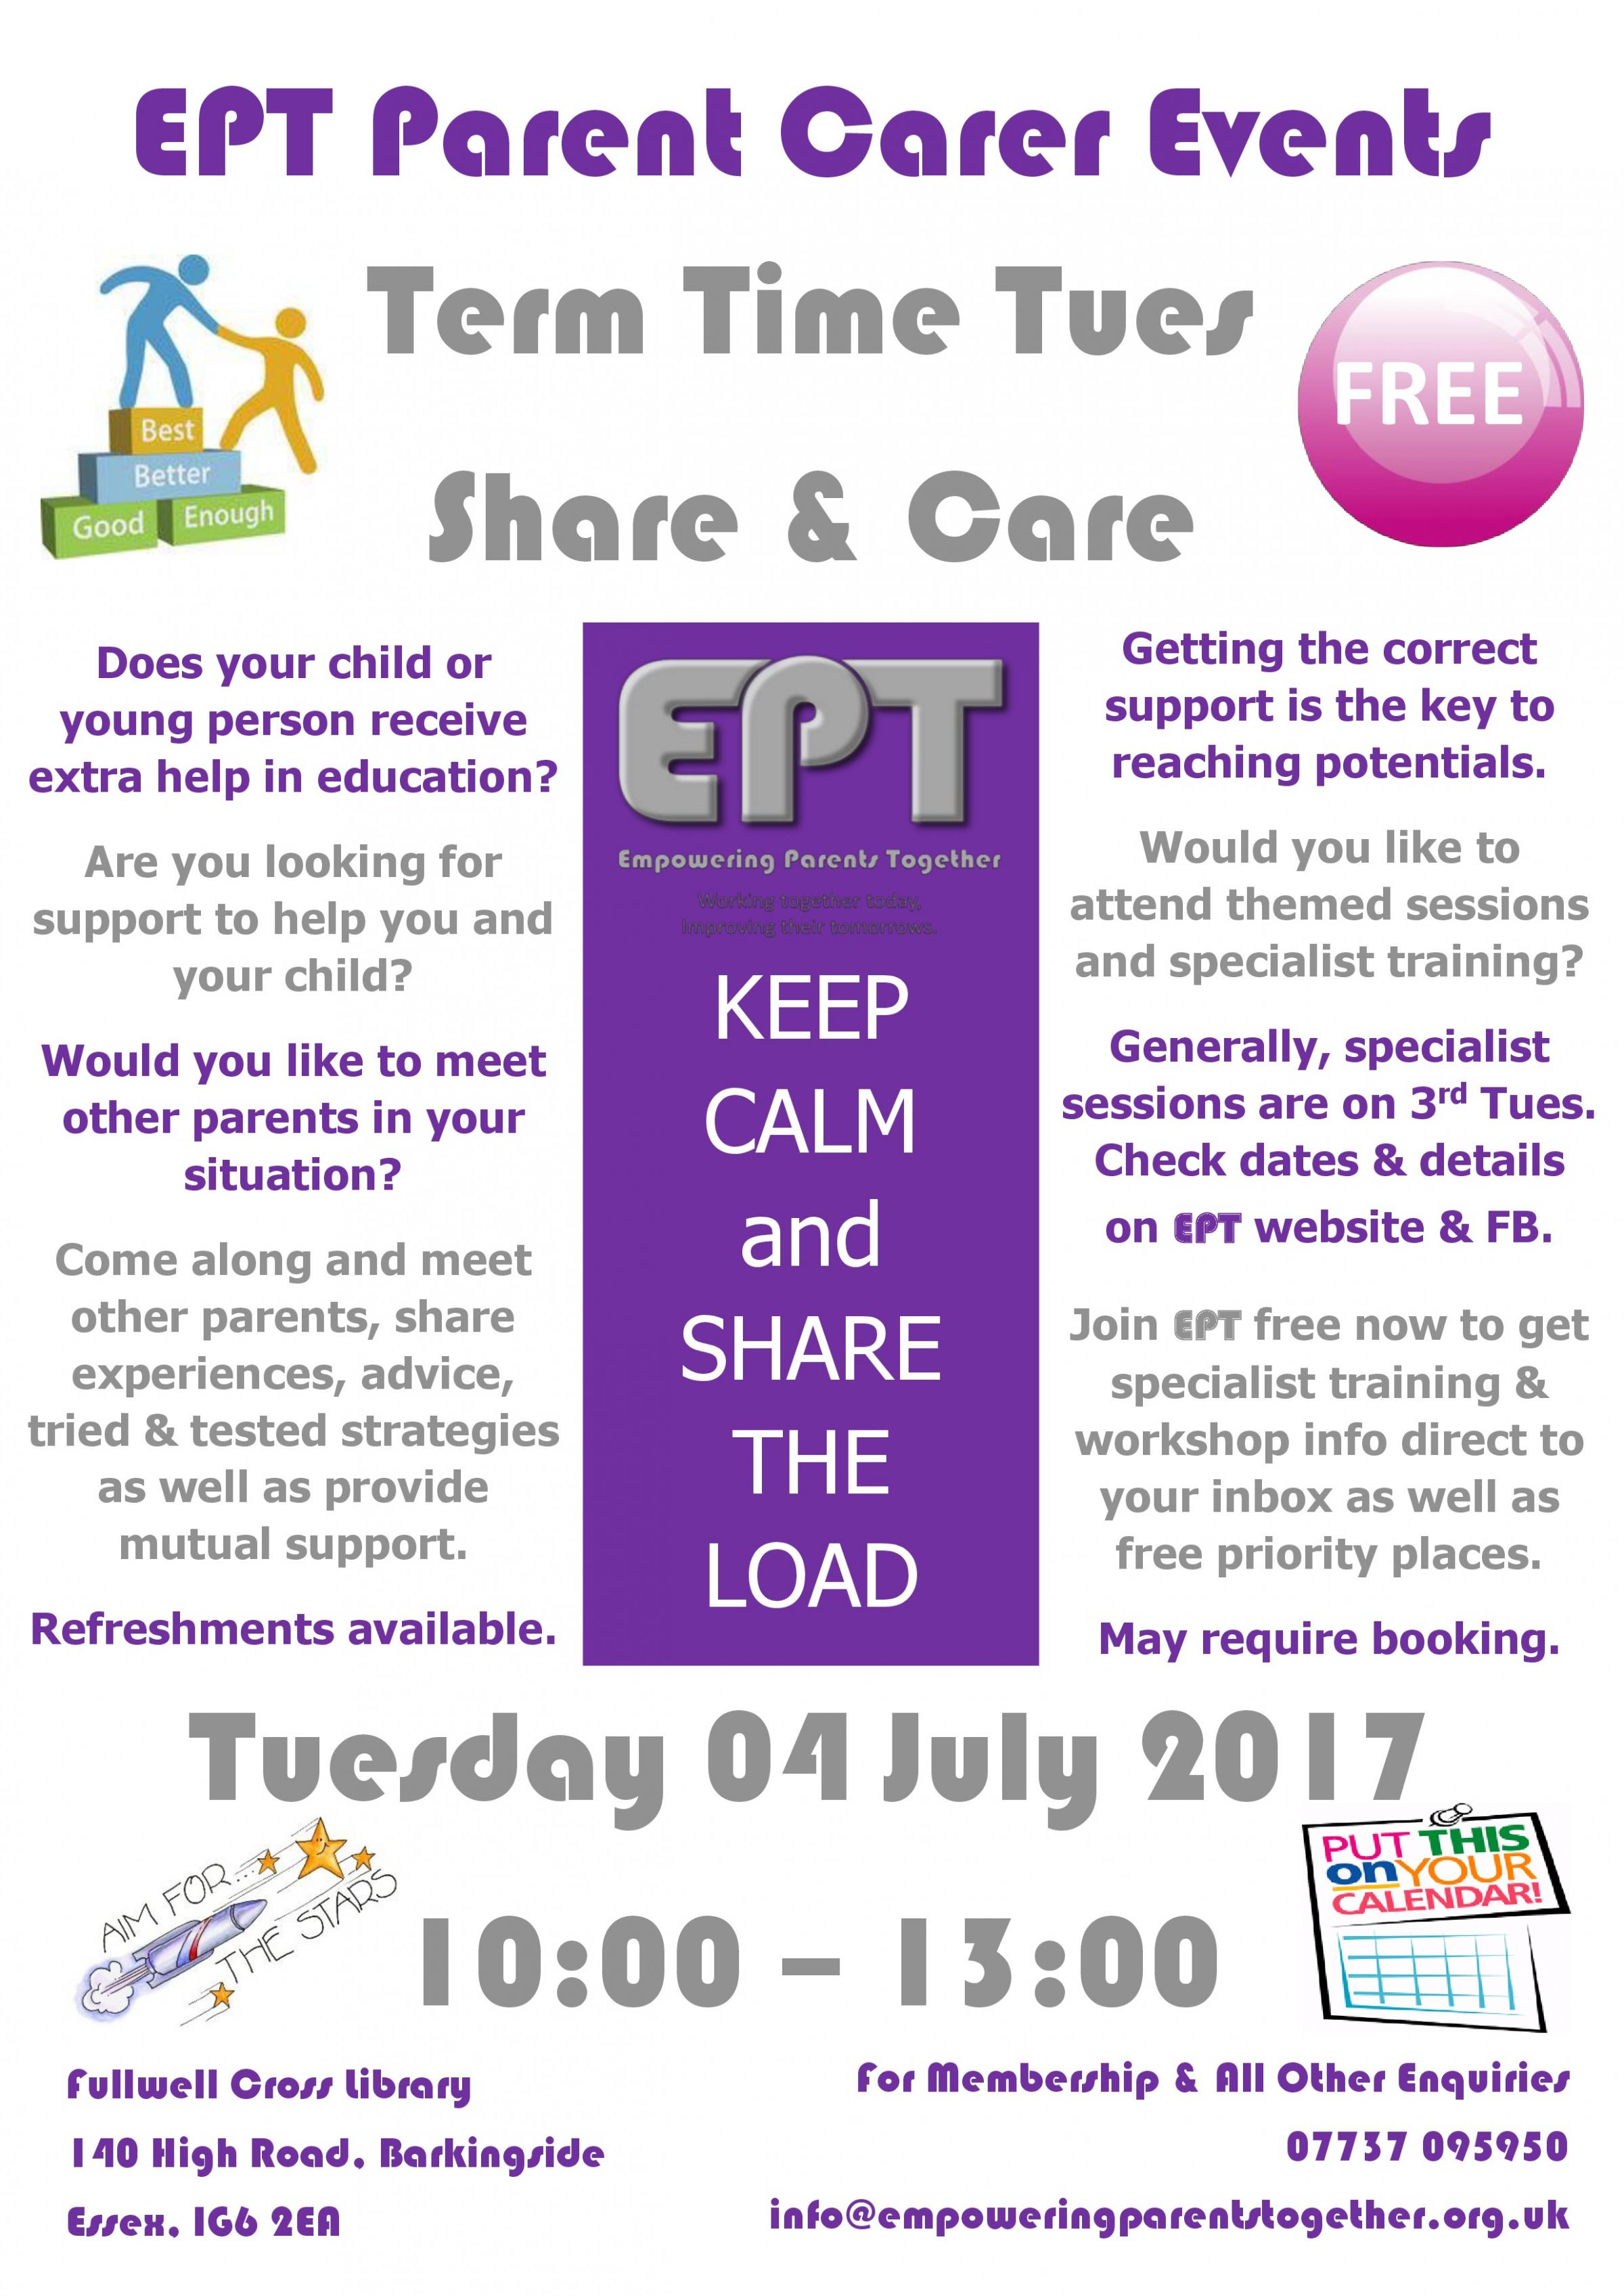 Term Time Tues - Share & Care